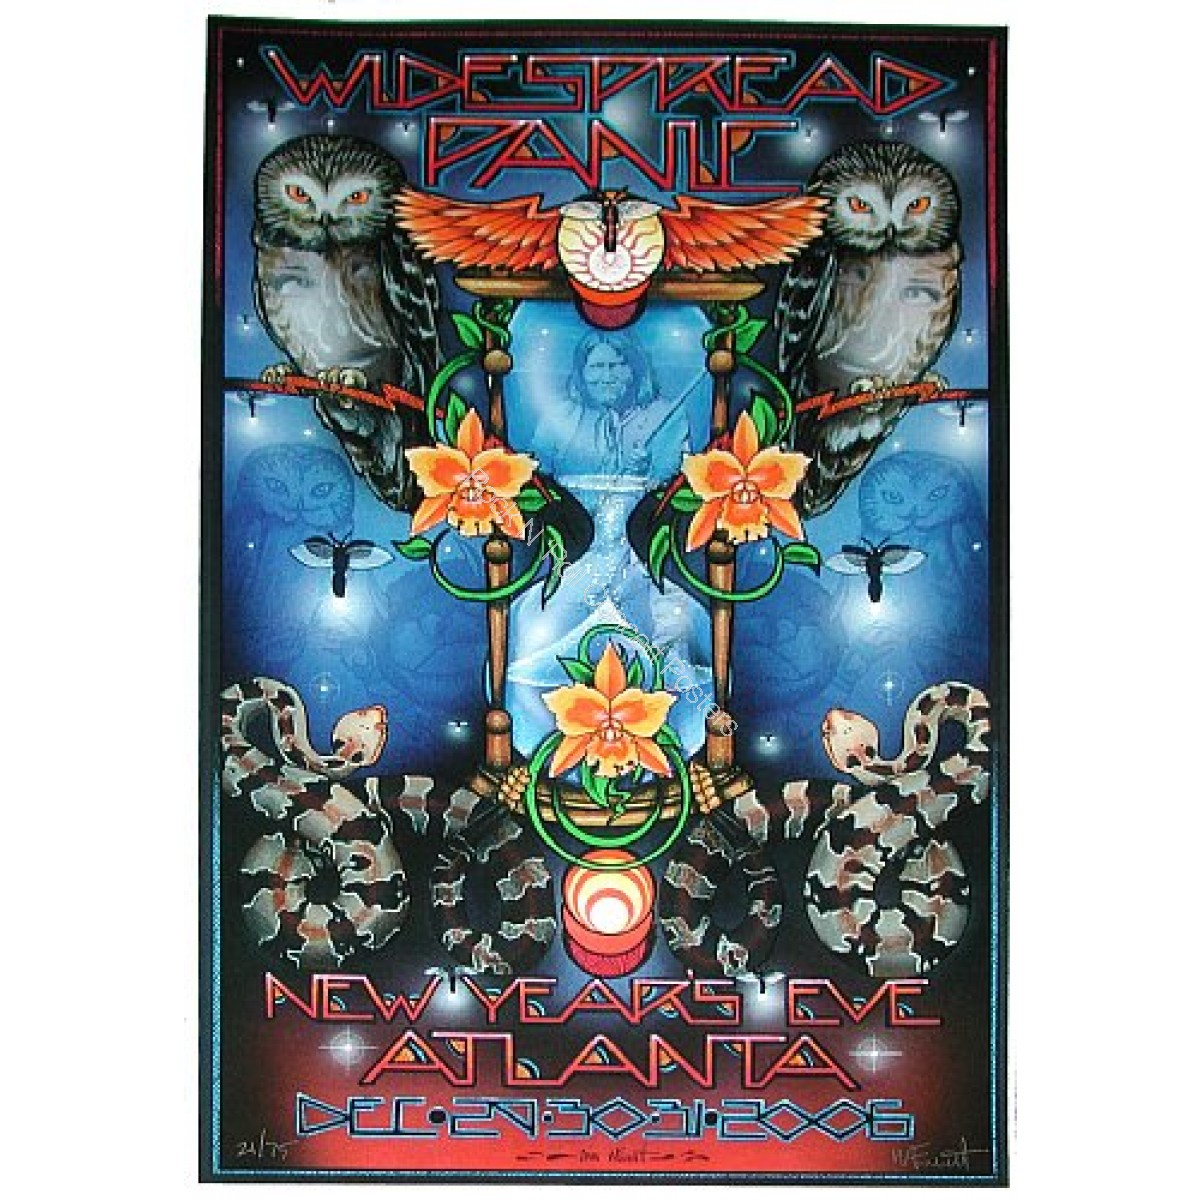 Widespread Panic @ The Philips Arena New Years Eve Concerts 2006 Atlanta Georgia LE print of 75 By Michael Everett